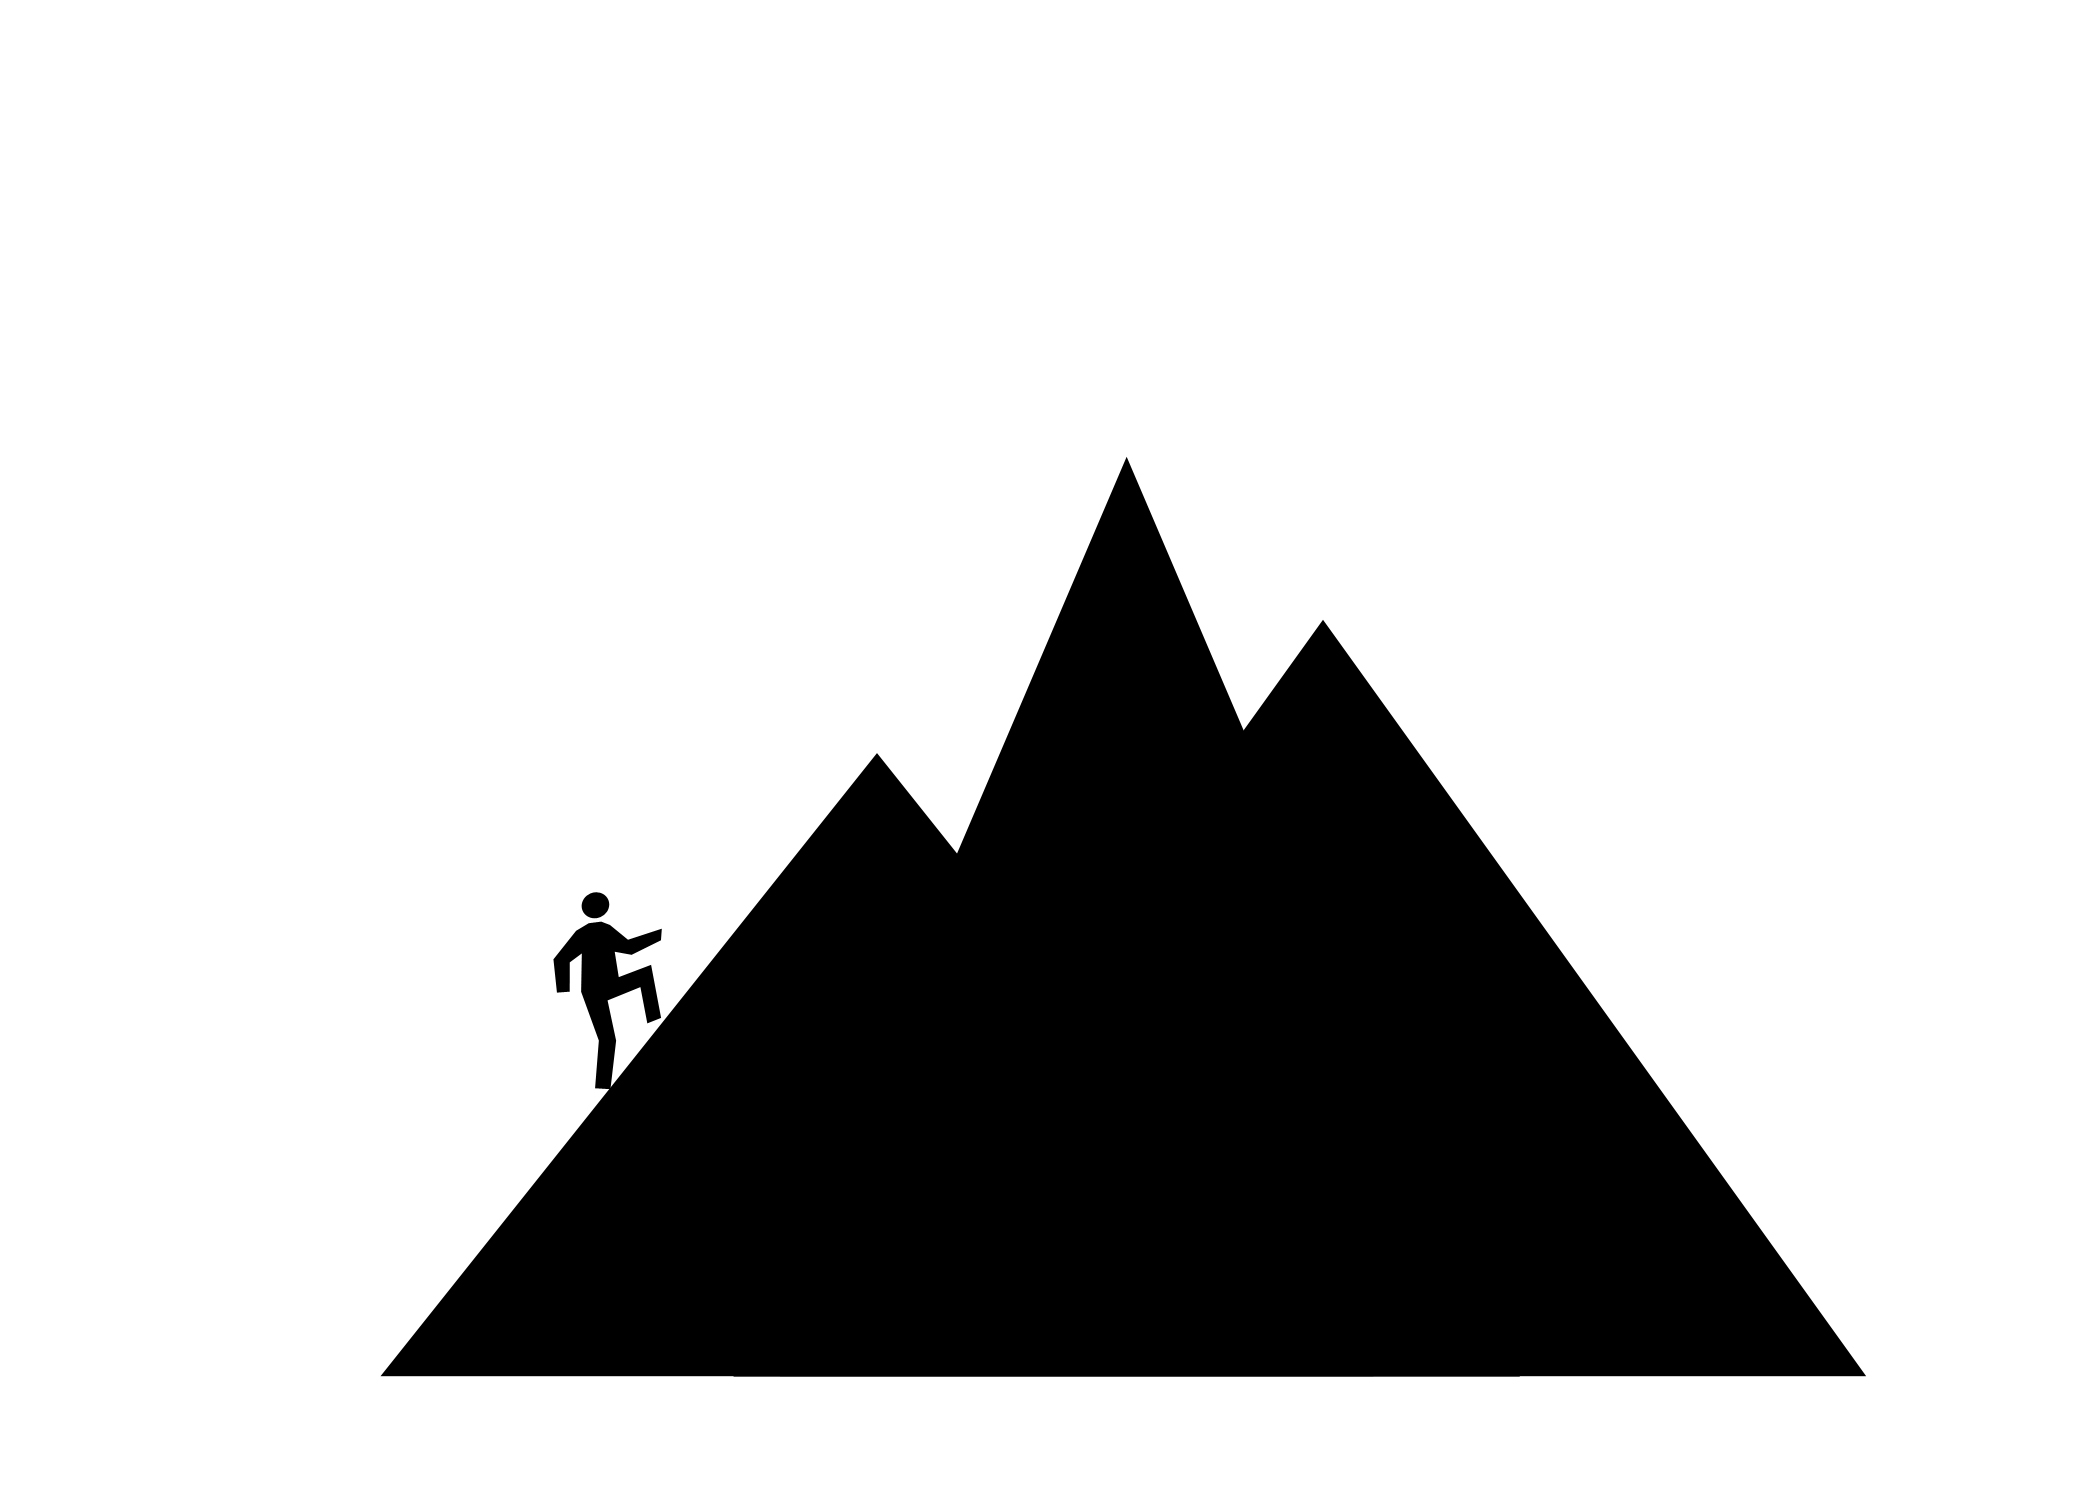 mountain silhouette clipart at getdrawings com free for personal rh getdrawings com mountain range silhouette clip art